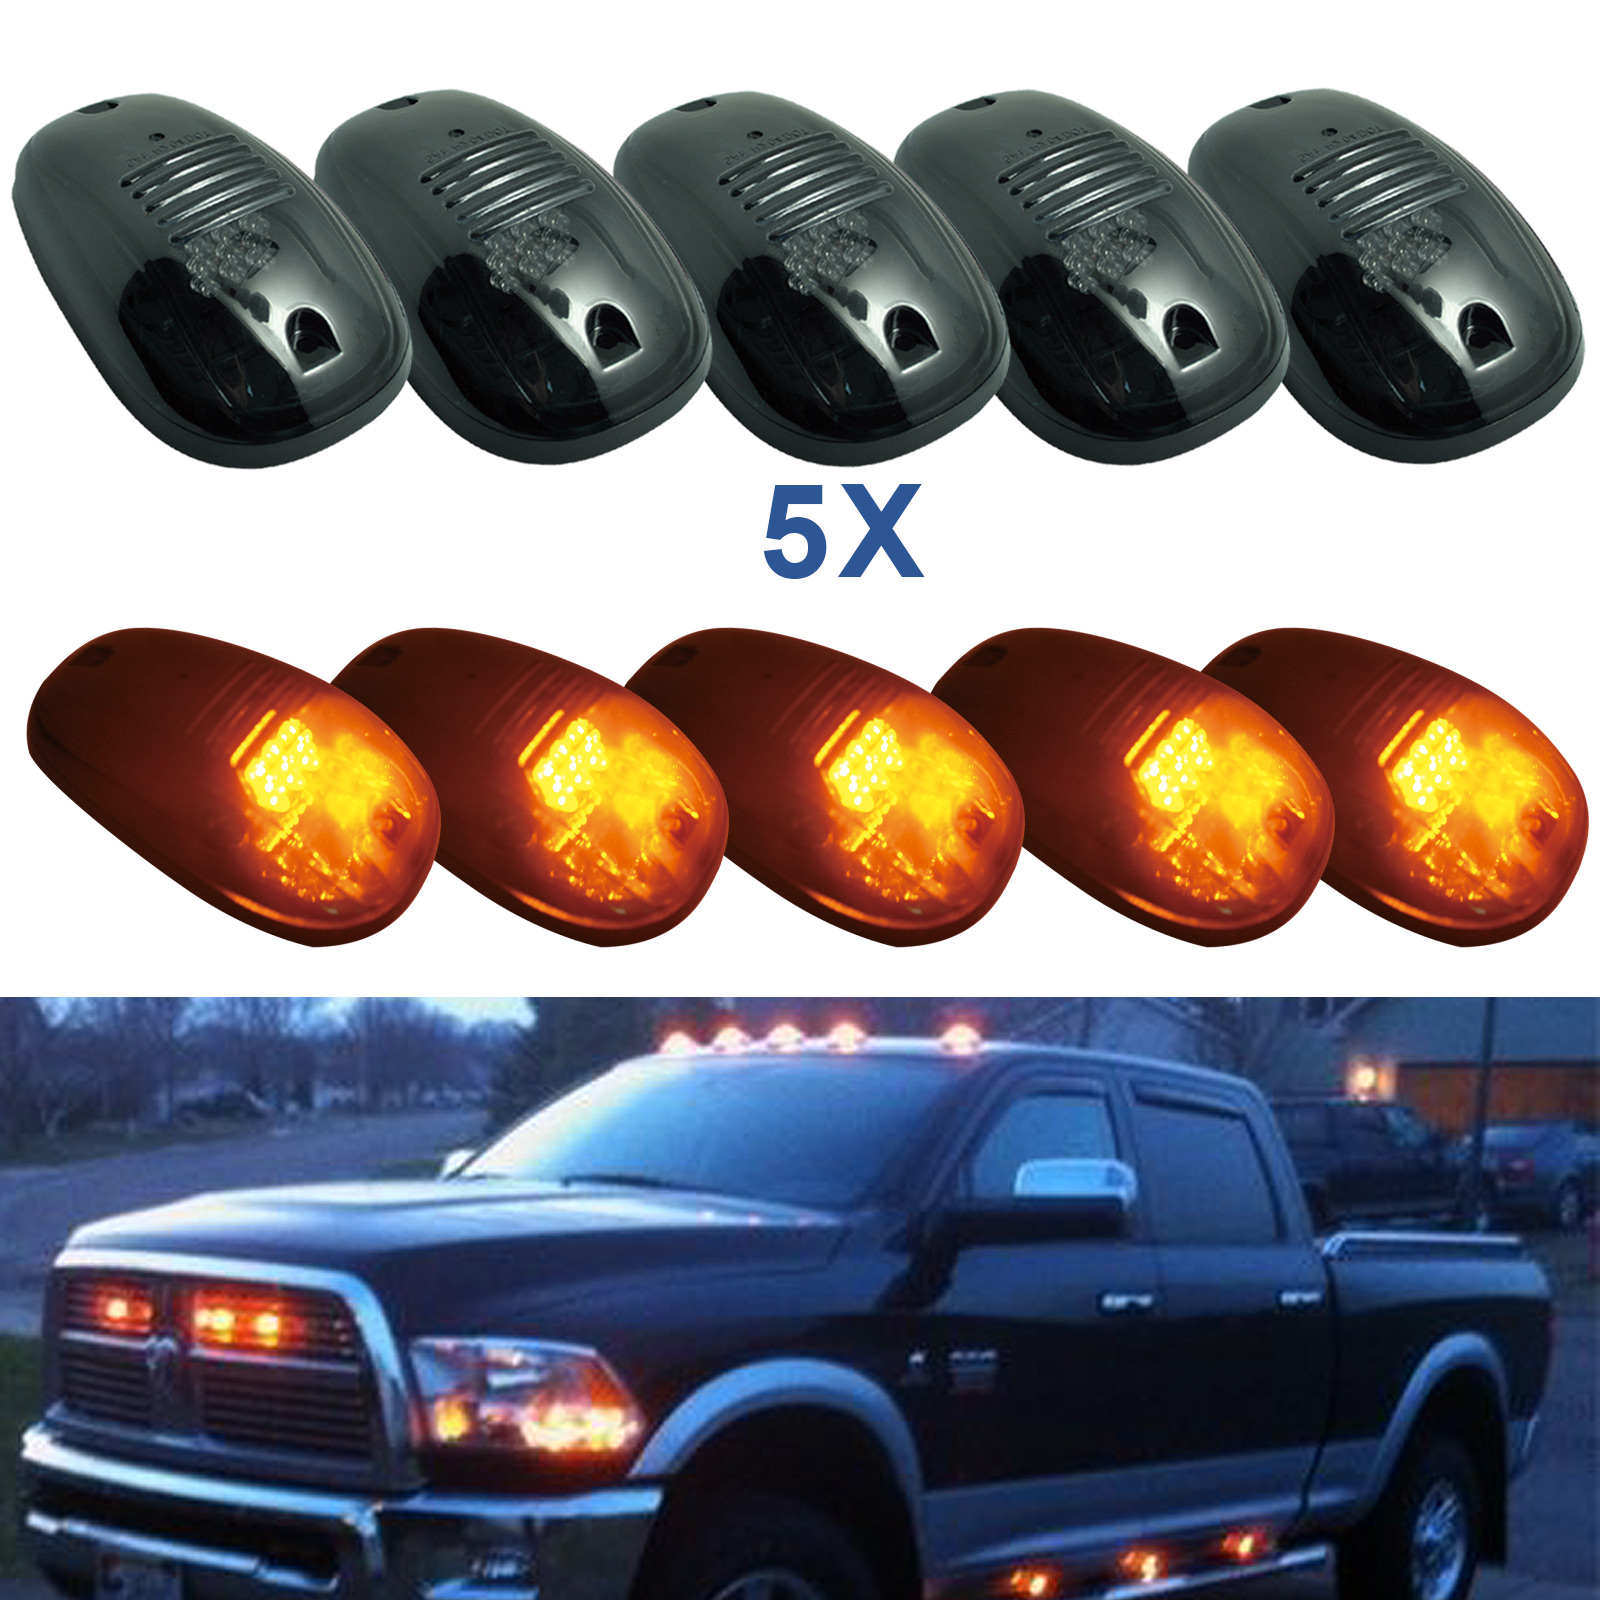 ФОТО 5pcs Car Smoked Amber Car LED Cab Roof Running Side Marker Clearance for Light Truck SUV